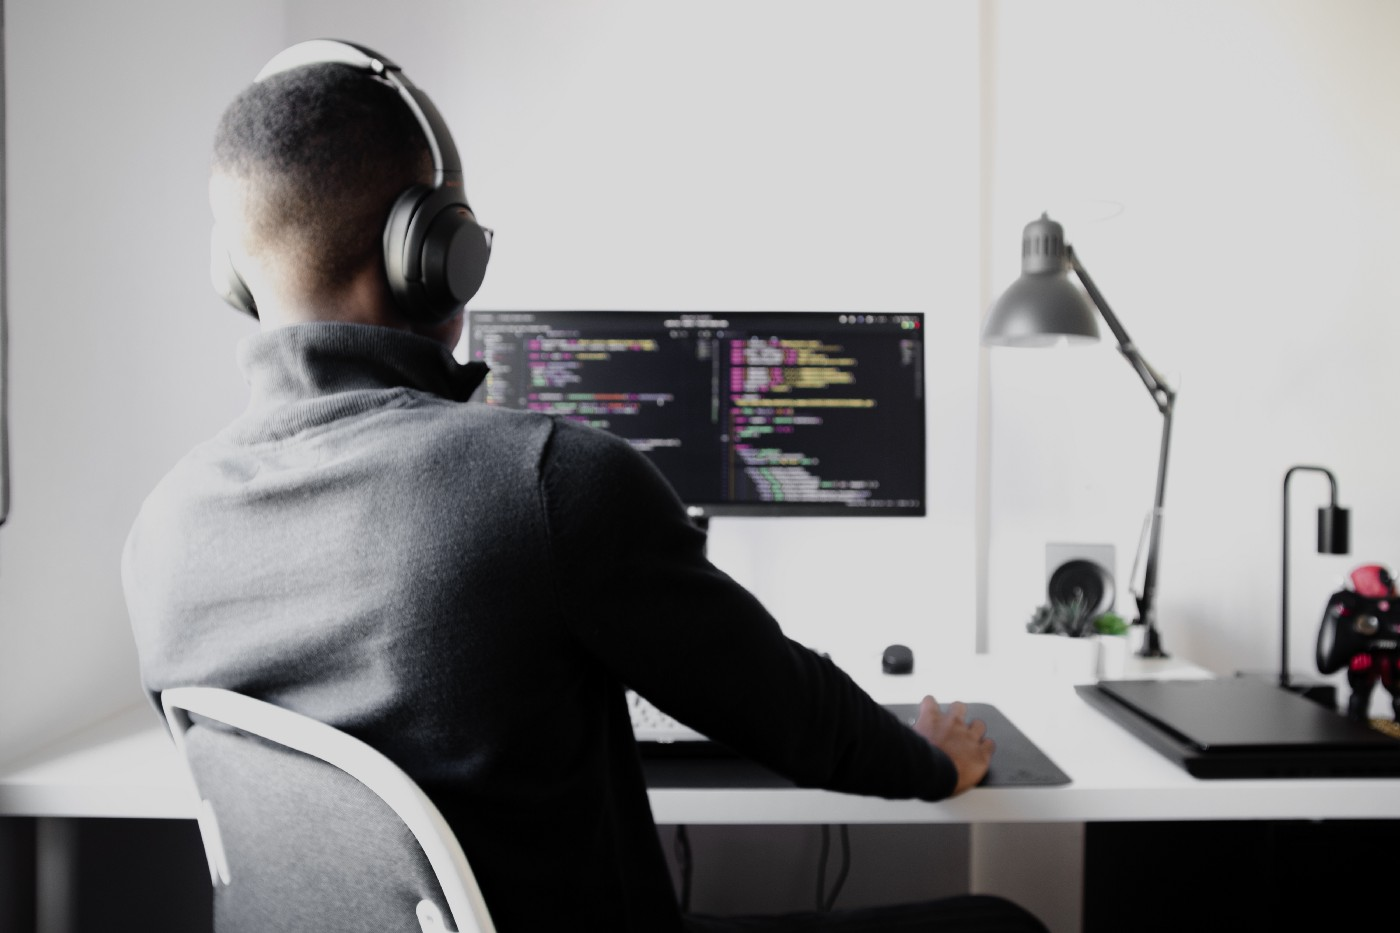 programmer wearing headphones examining code on a screen